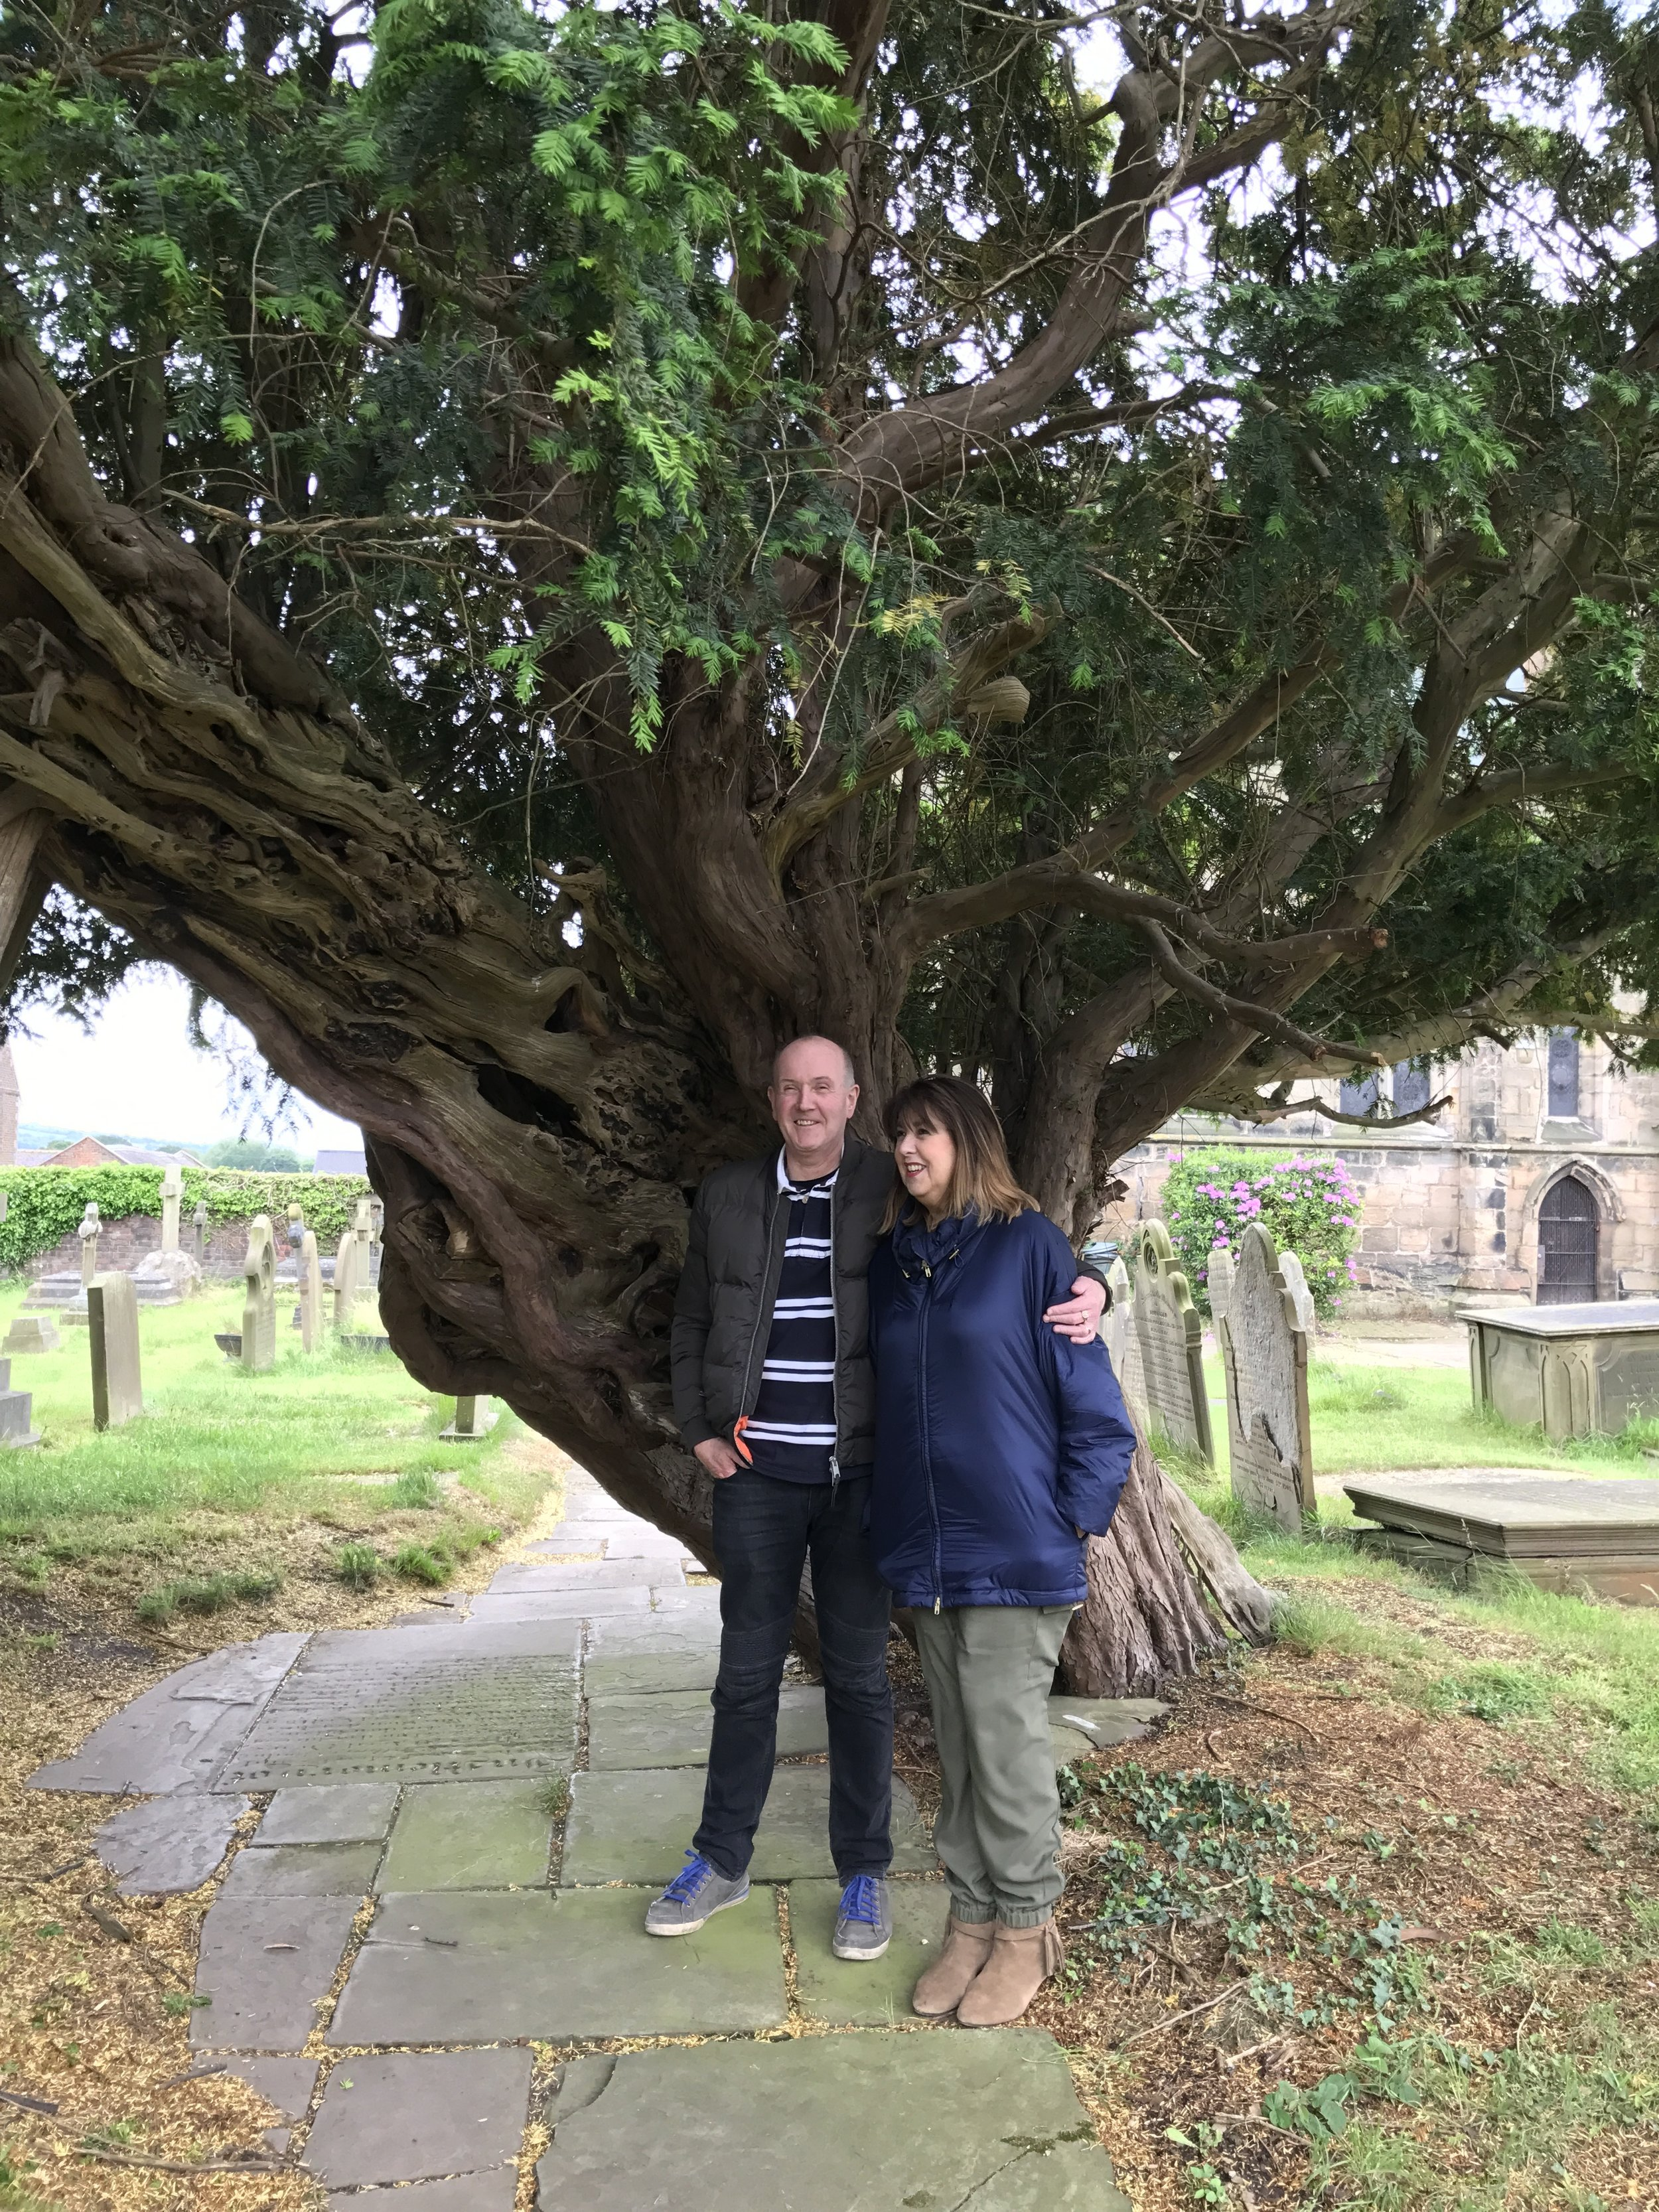 Veronica & David standing under a Yew tree (the tree that Bow & Arrows are made of). I first met Veronica 6yrs ago at a Healing School in Southhampton.